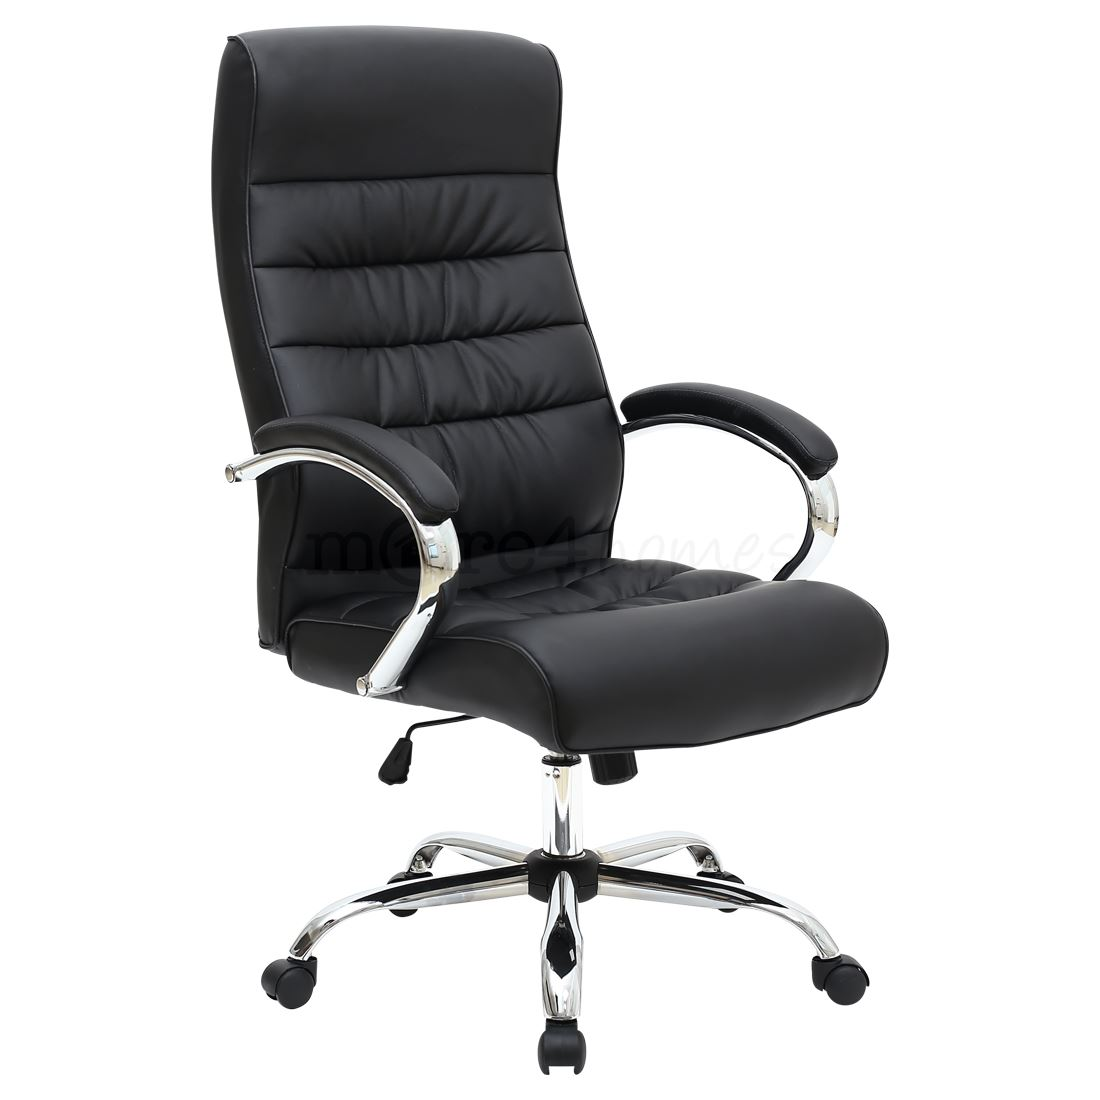 Good Posture Office Chair Mexico Premium High Back Executive Leather Office Chair